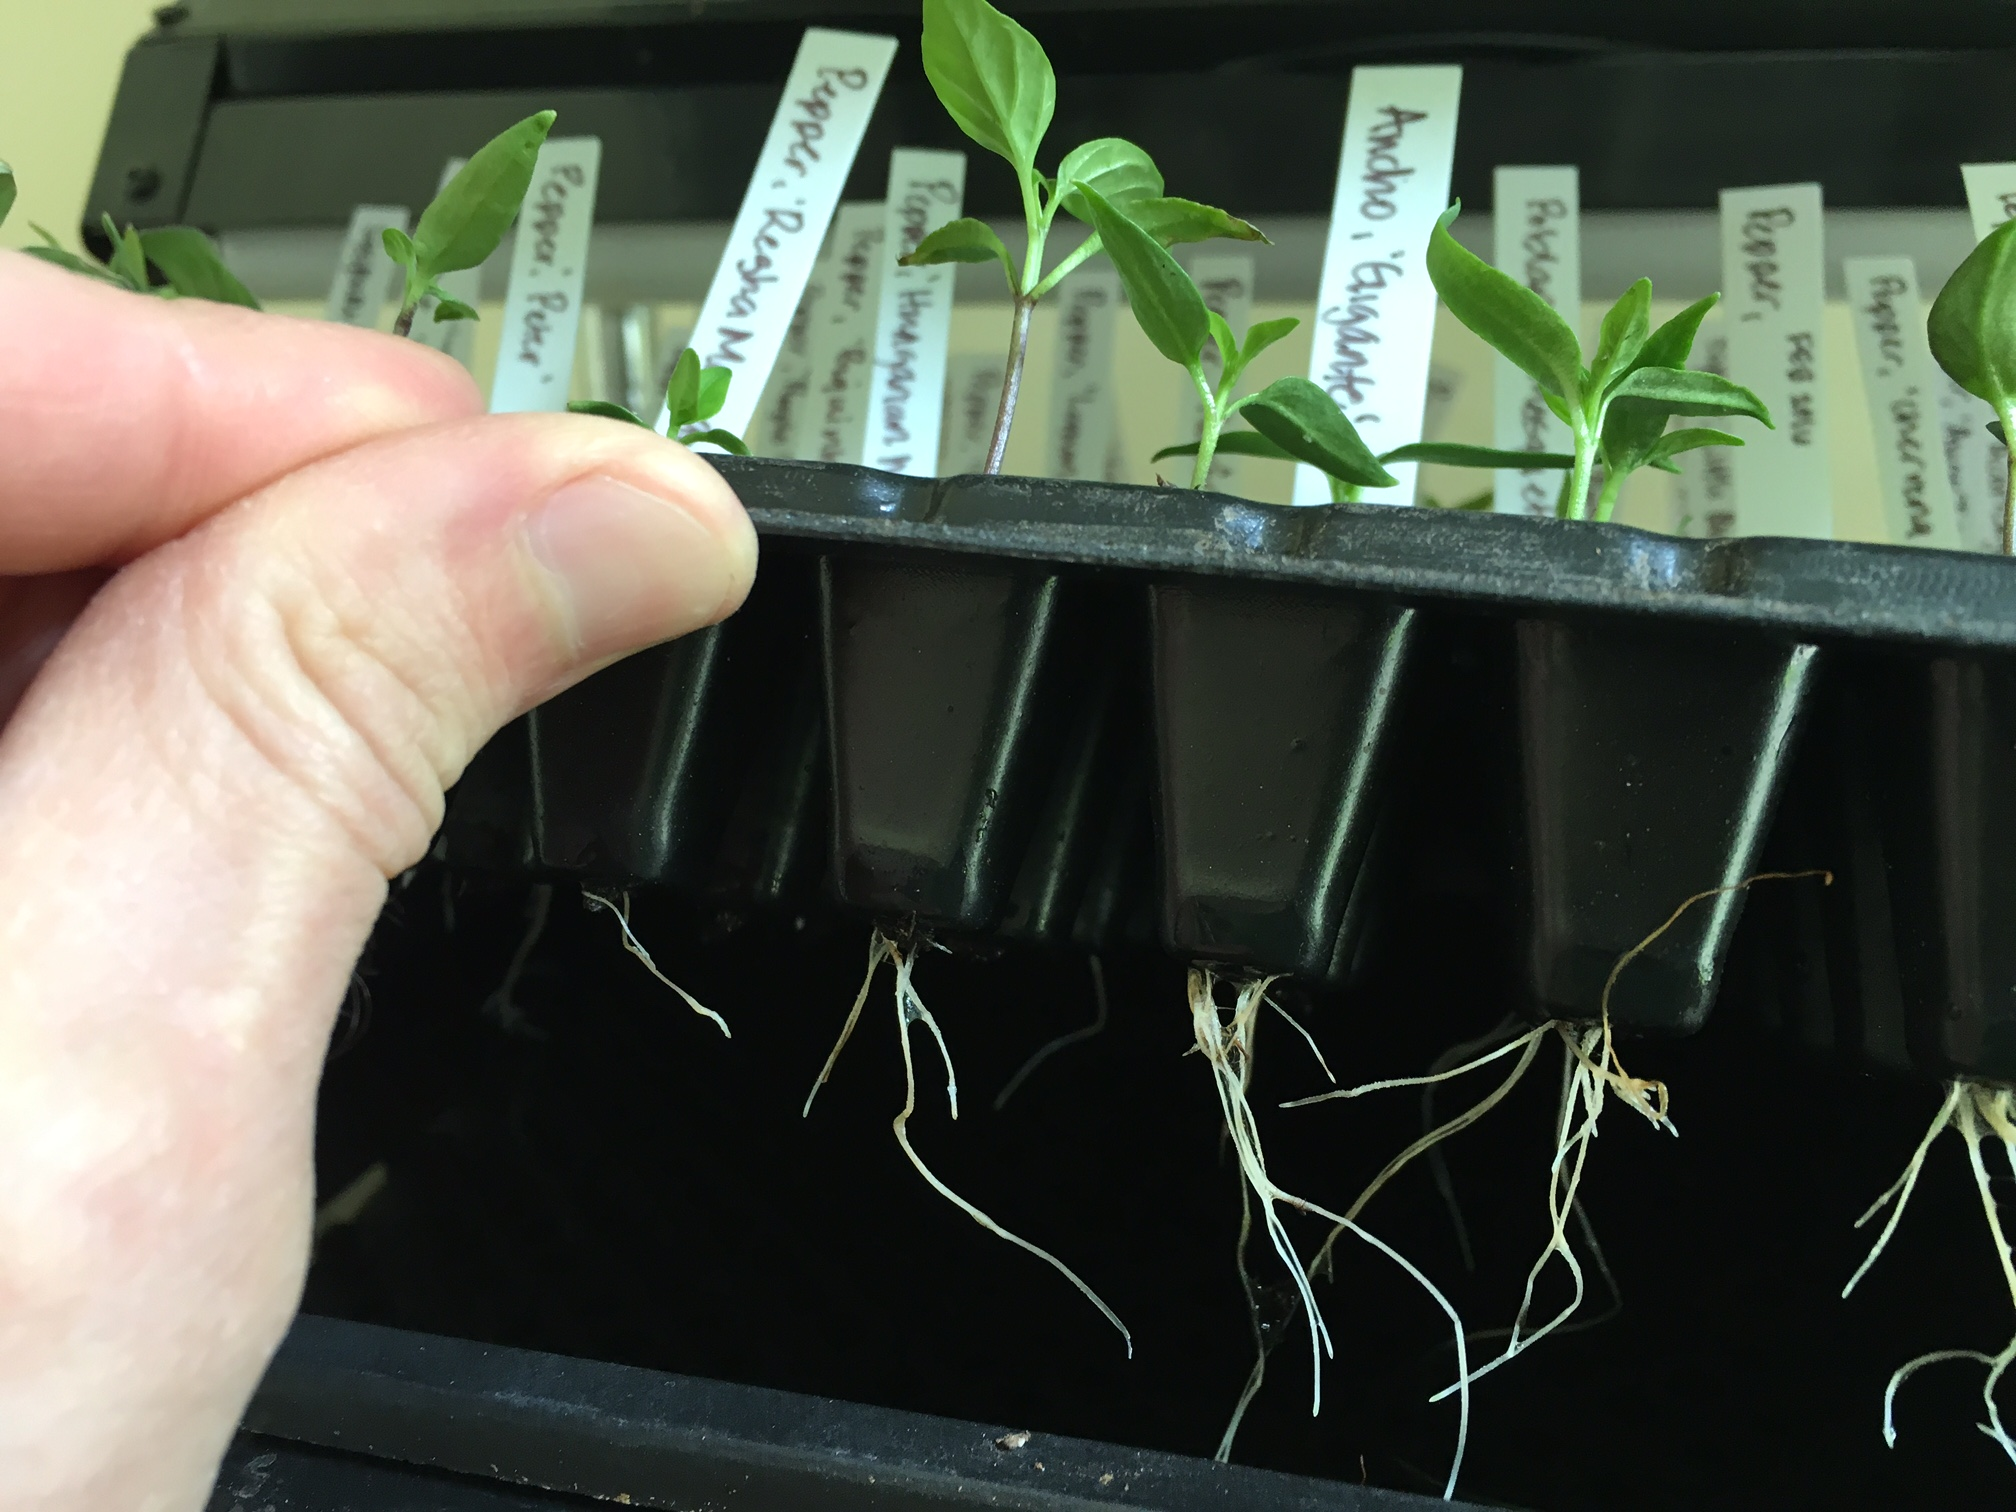 A small hole in the bottom of each cell allows for good drainage and for the seedling roots to grow out into the tray below. To remove the seedlings, we gently pushed a chopstick into the hole to dislodge the seedling from its cell.